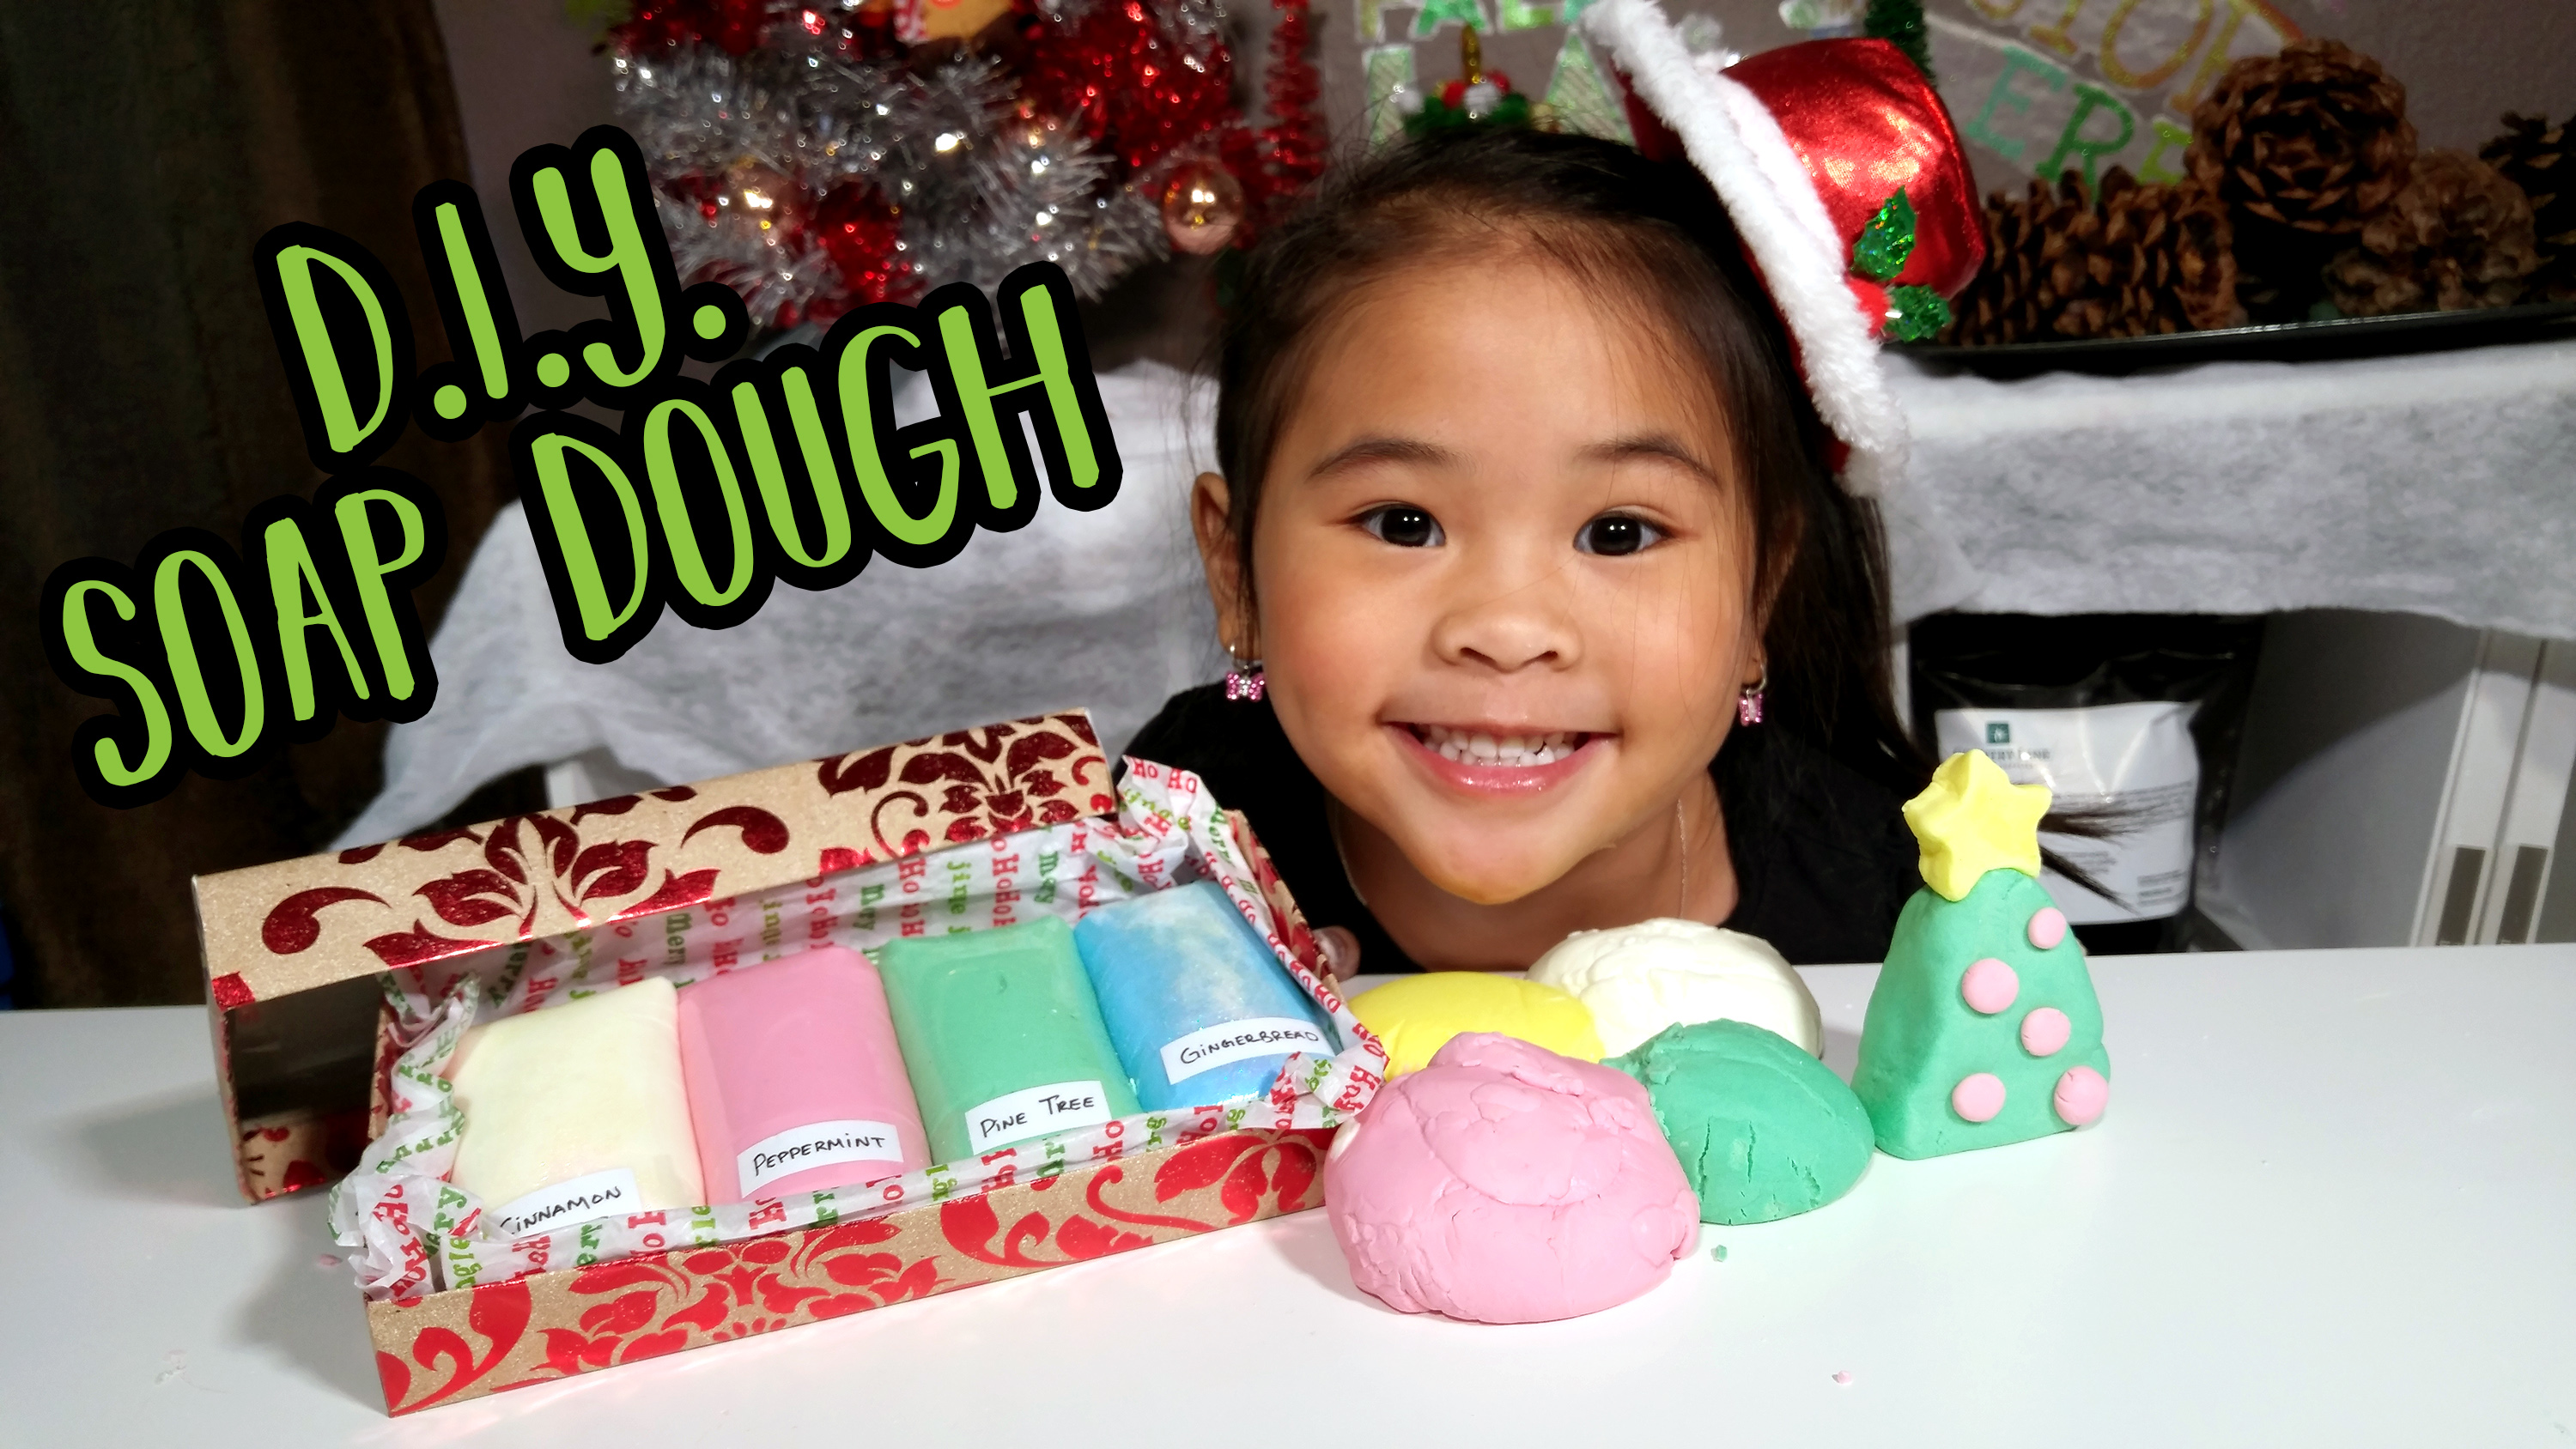 Christmas Gifts Kids Can Make - DIY Soap Dough - DIY Soap Putty